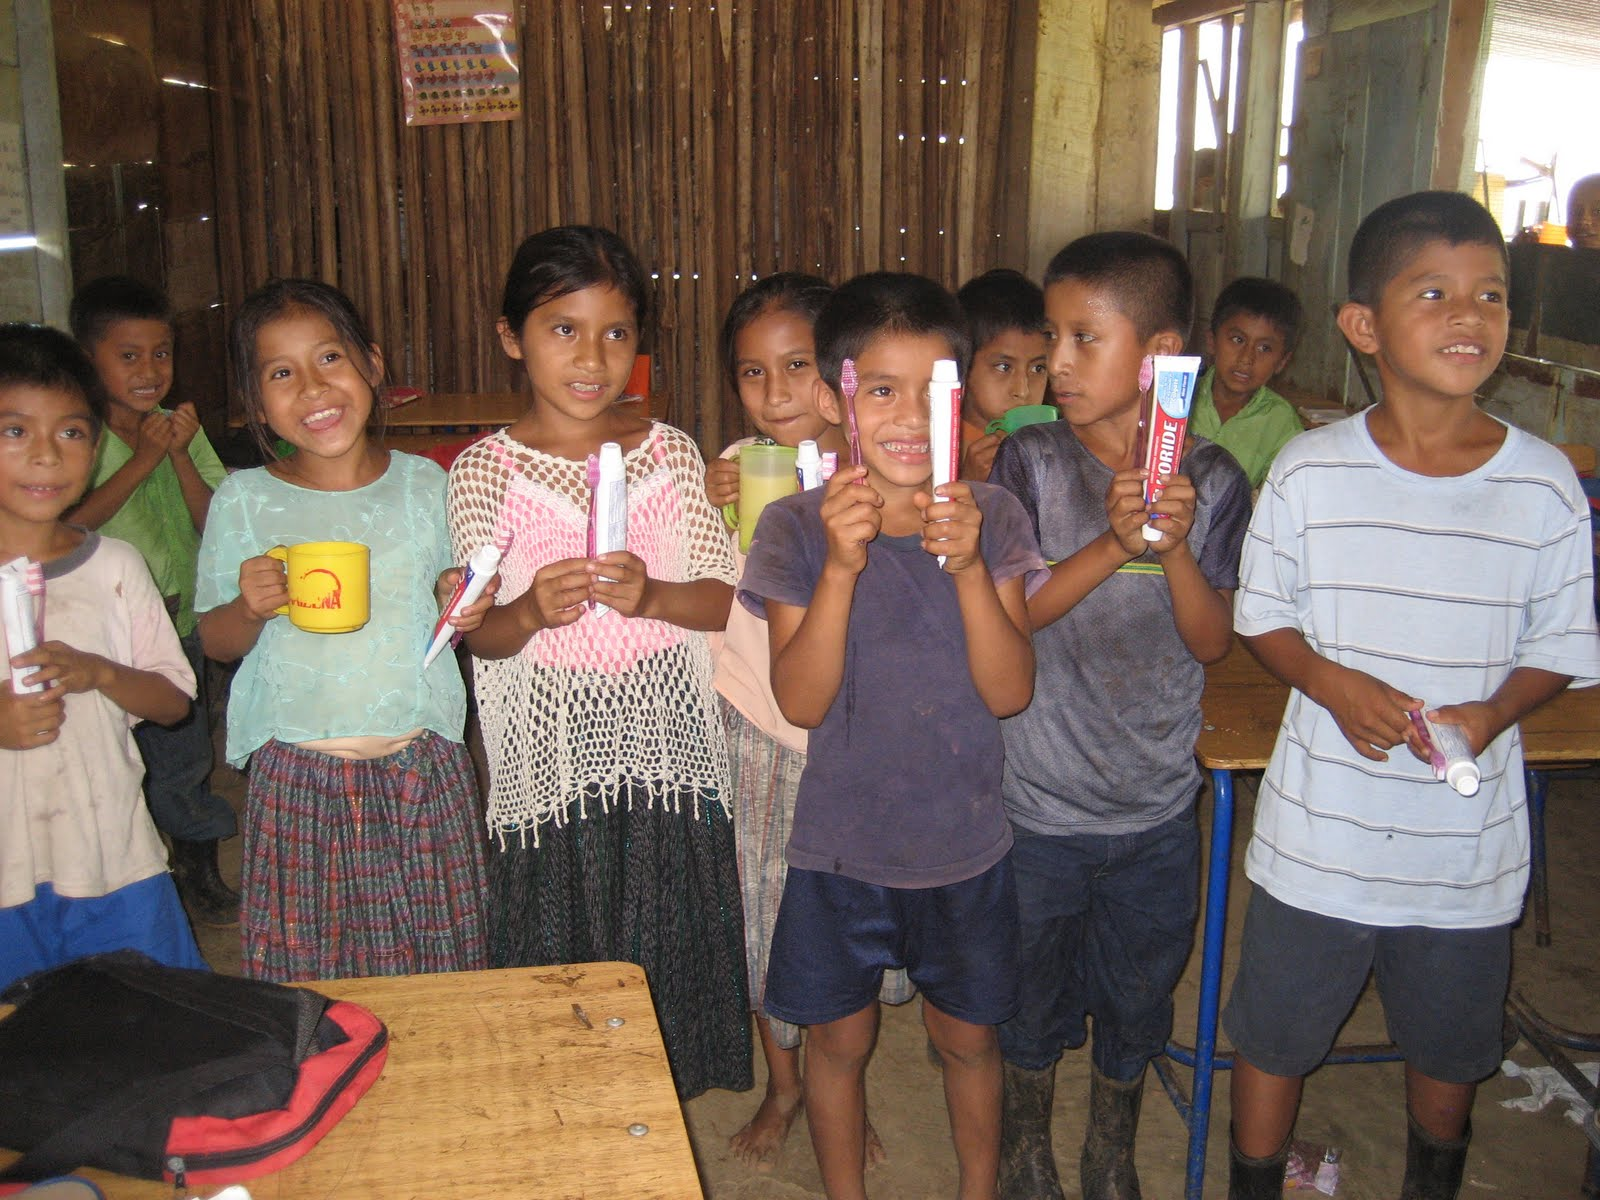 BVC Coban 2009 kids with toothbrushes.JPG